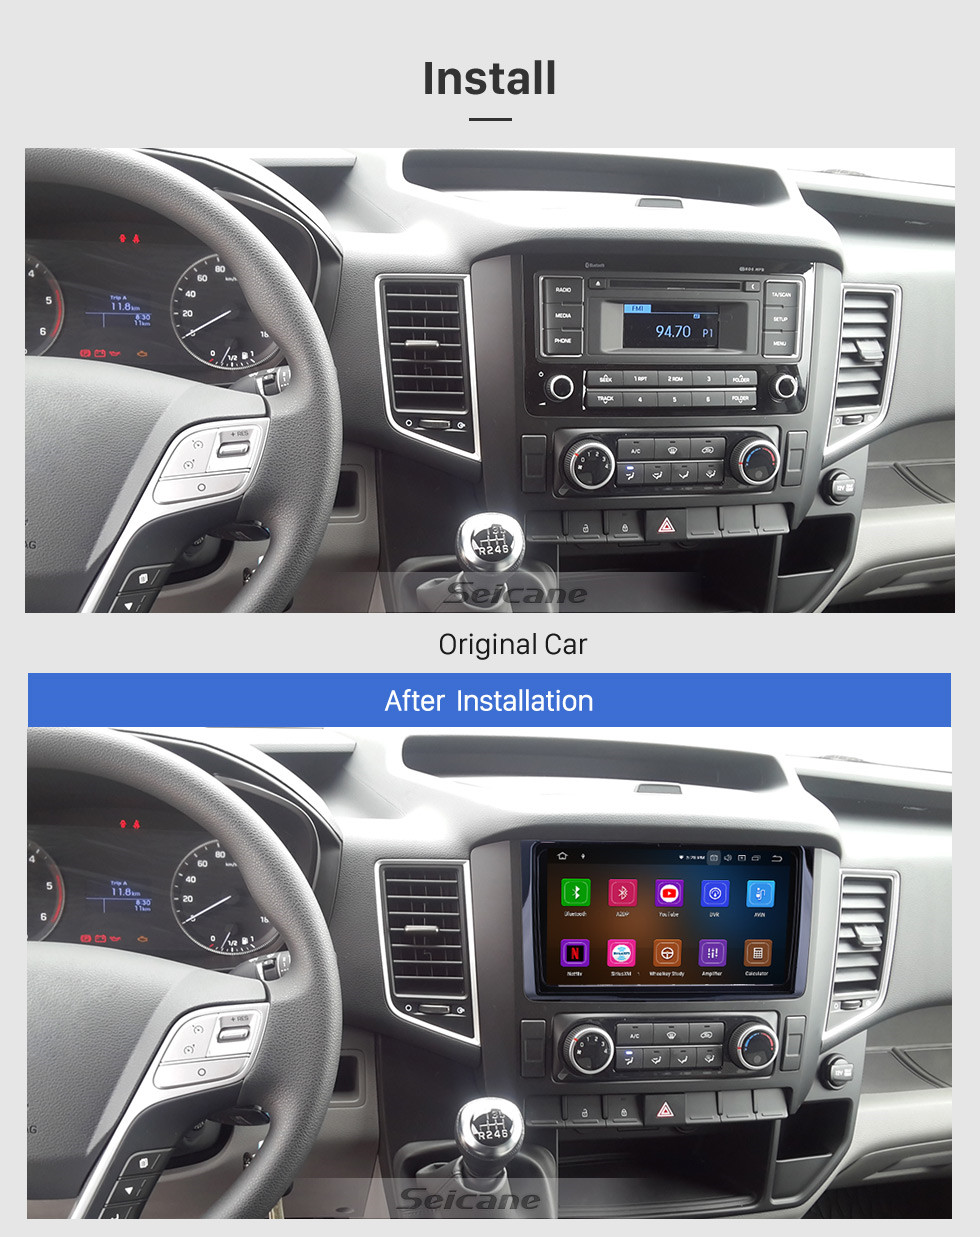 Seicane Android 10.0 For 2016 Hyundai H350 Radio 9 inch GPS Navigation System Bluetooth AUX WIFI HD Touchscreen Carplay support TPMS SWC